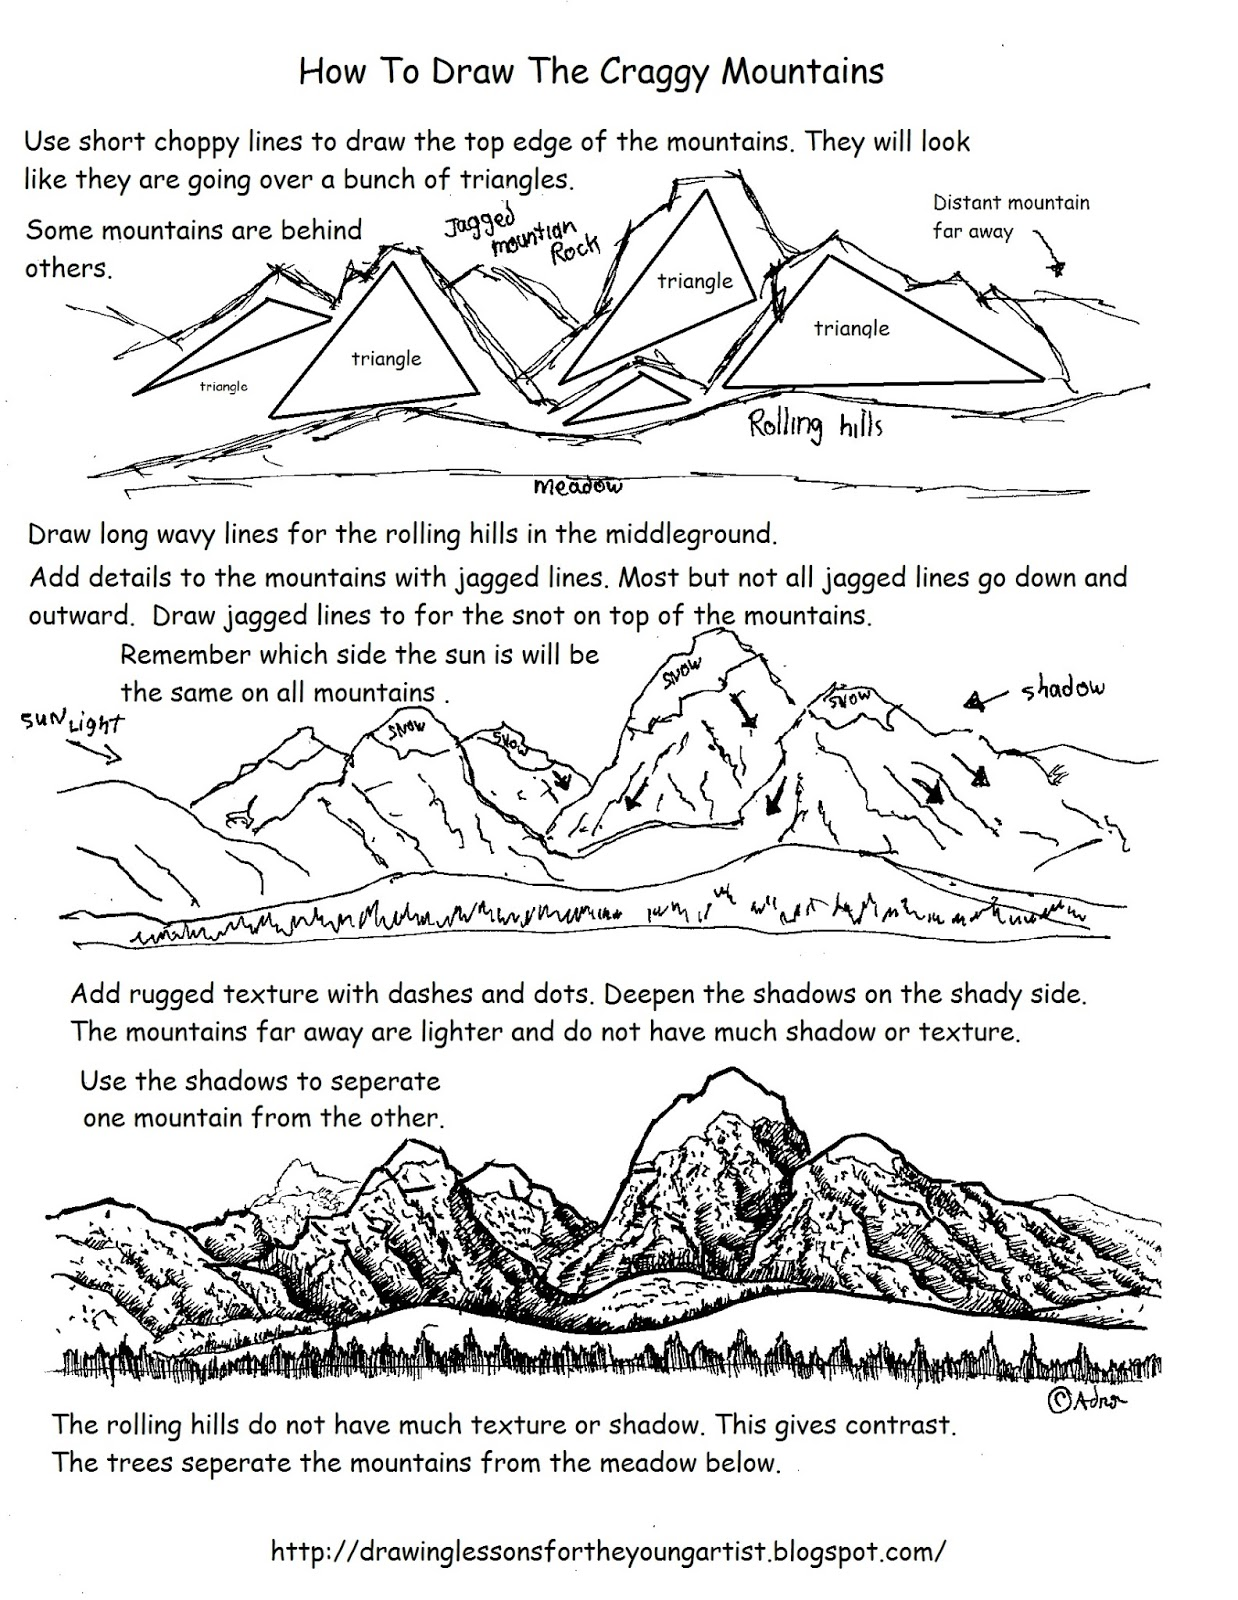 How To Draw Worksheets For The Young Artist How To Draw Craggy Distant Mountains